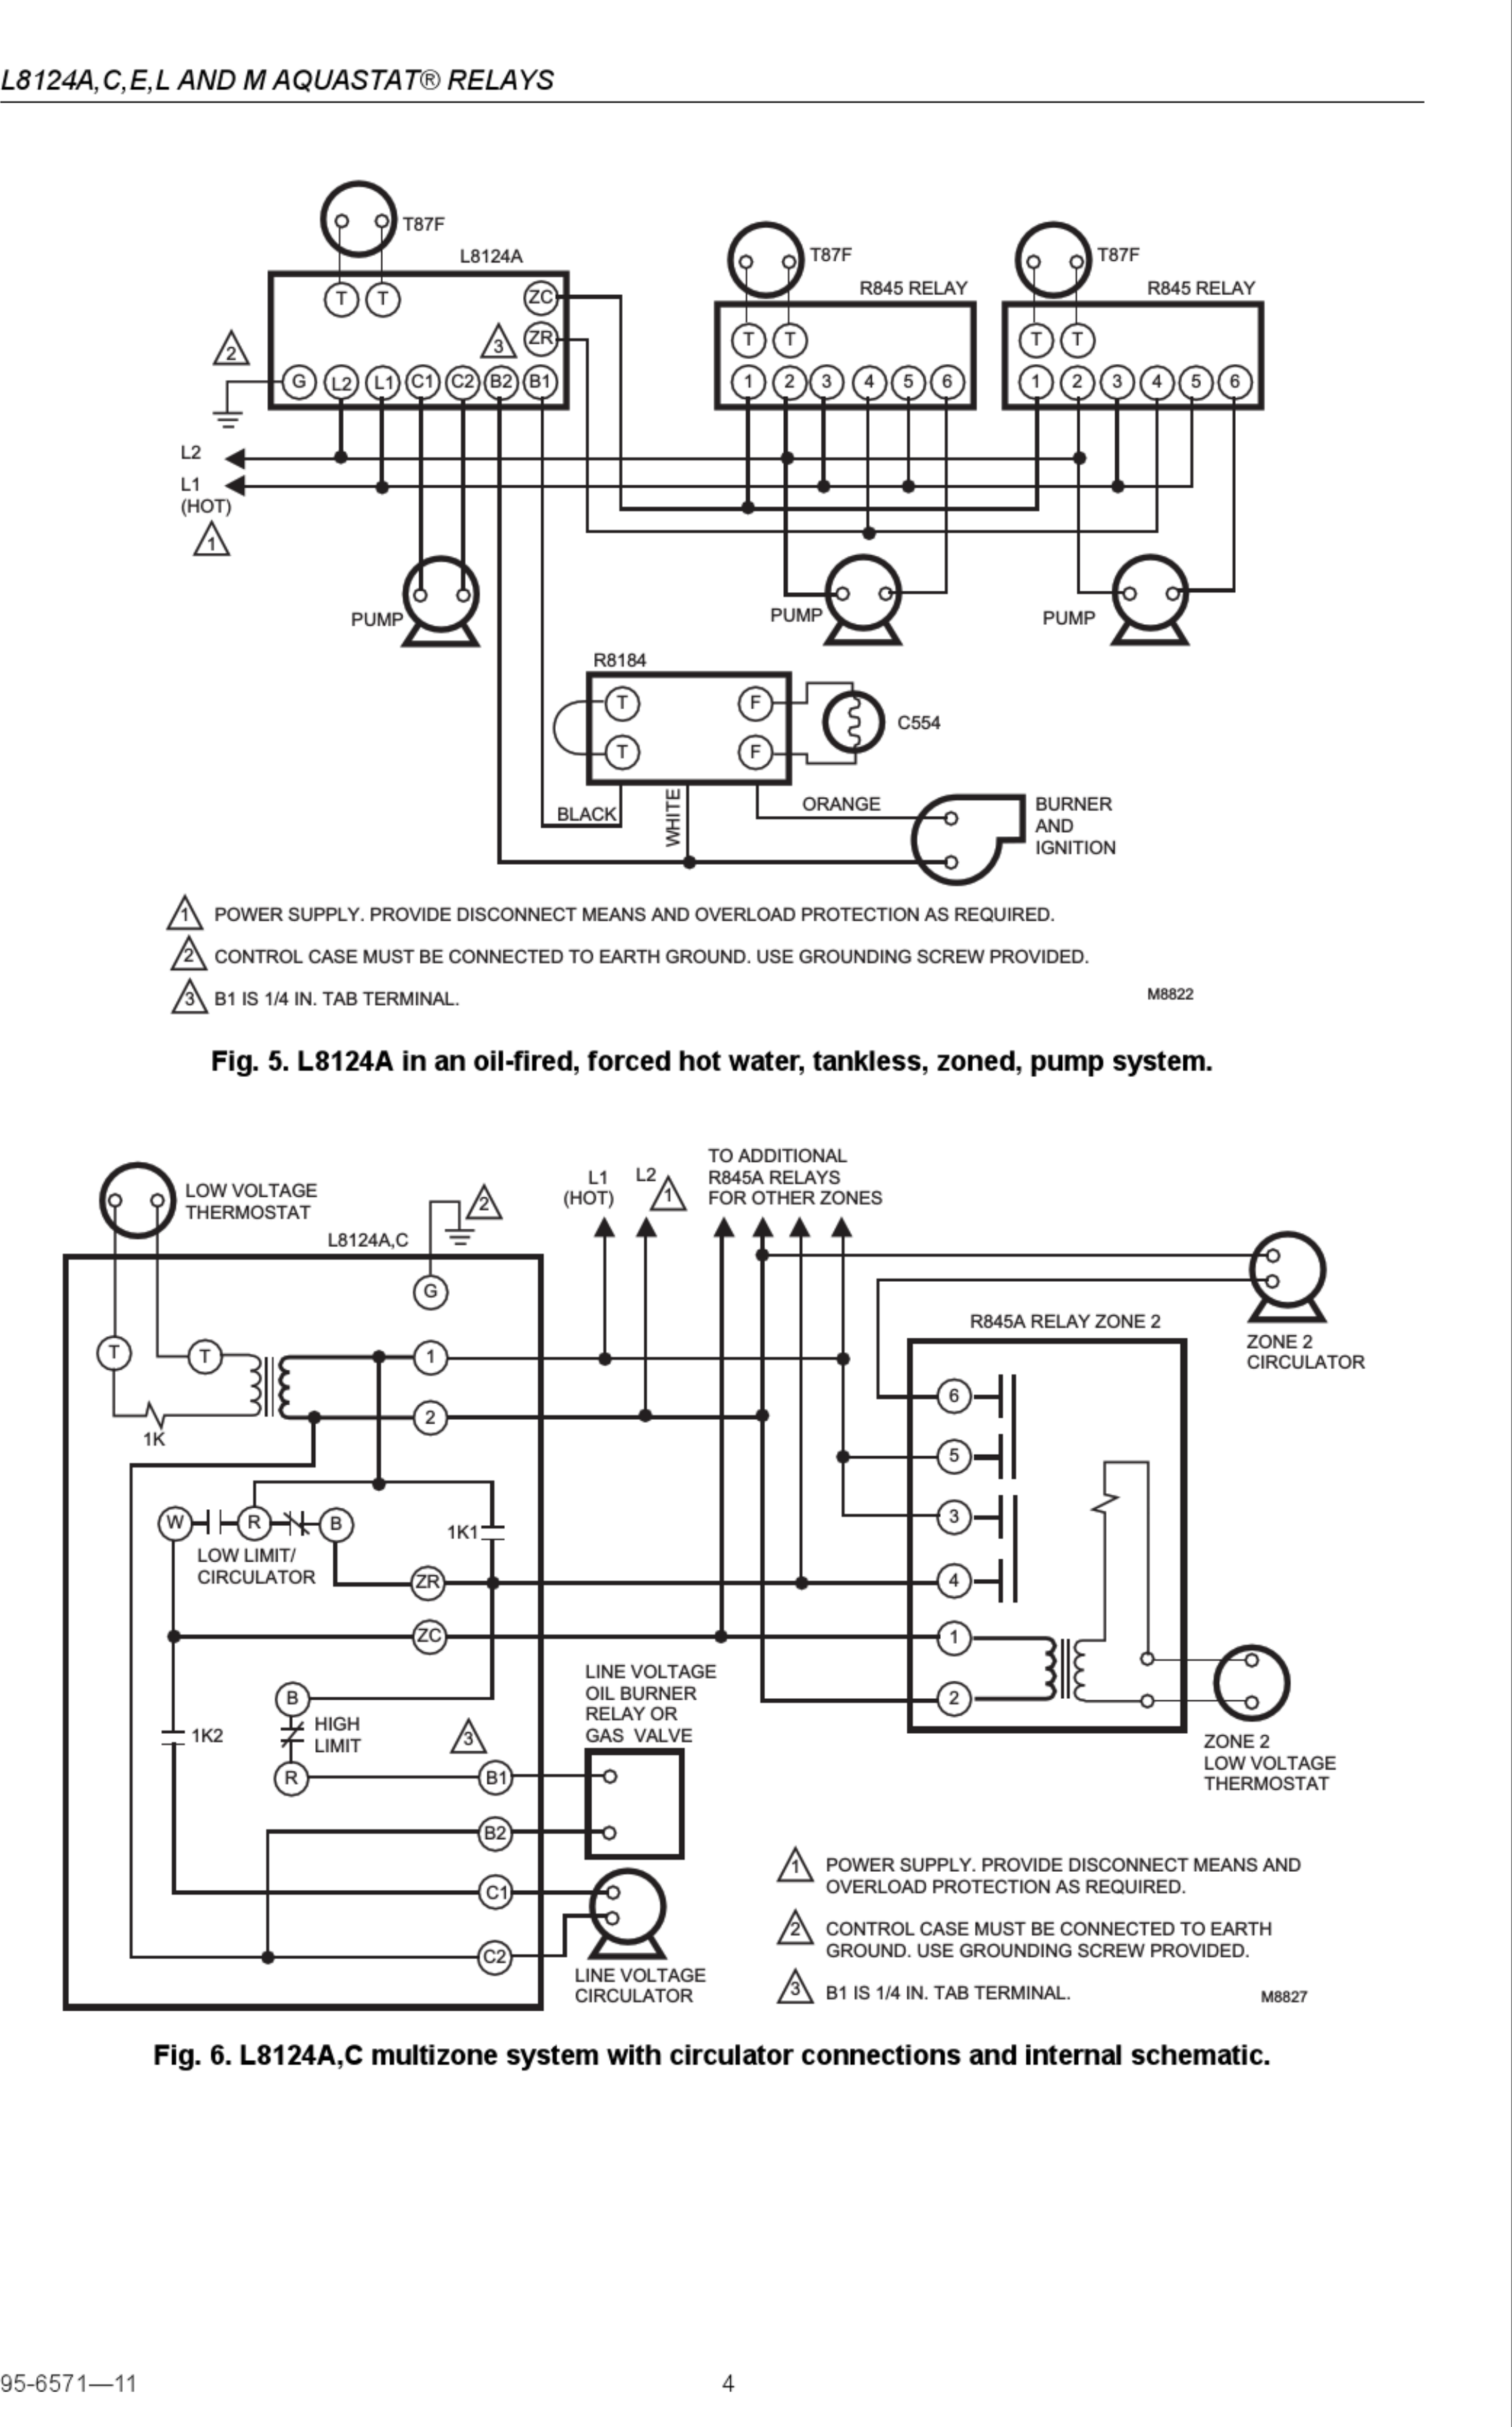 Honeywell Aquastat L8124a Installation Instructions Manual